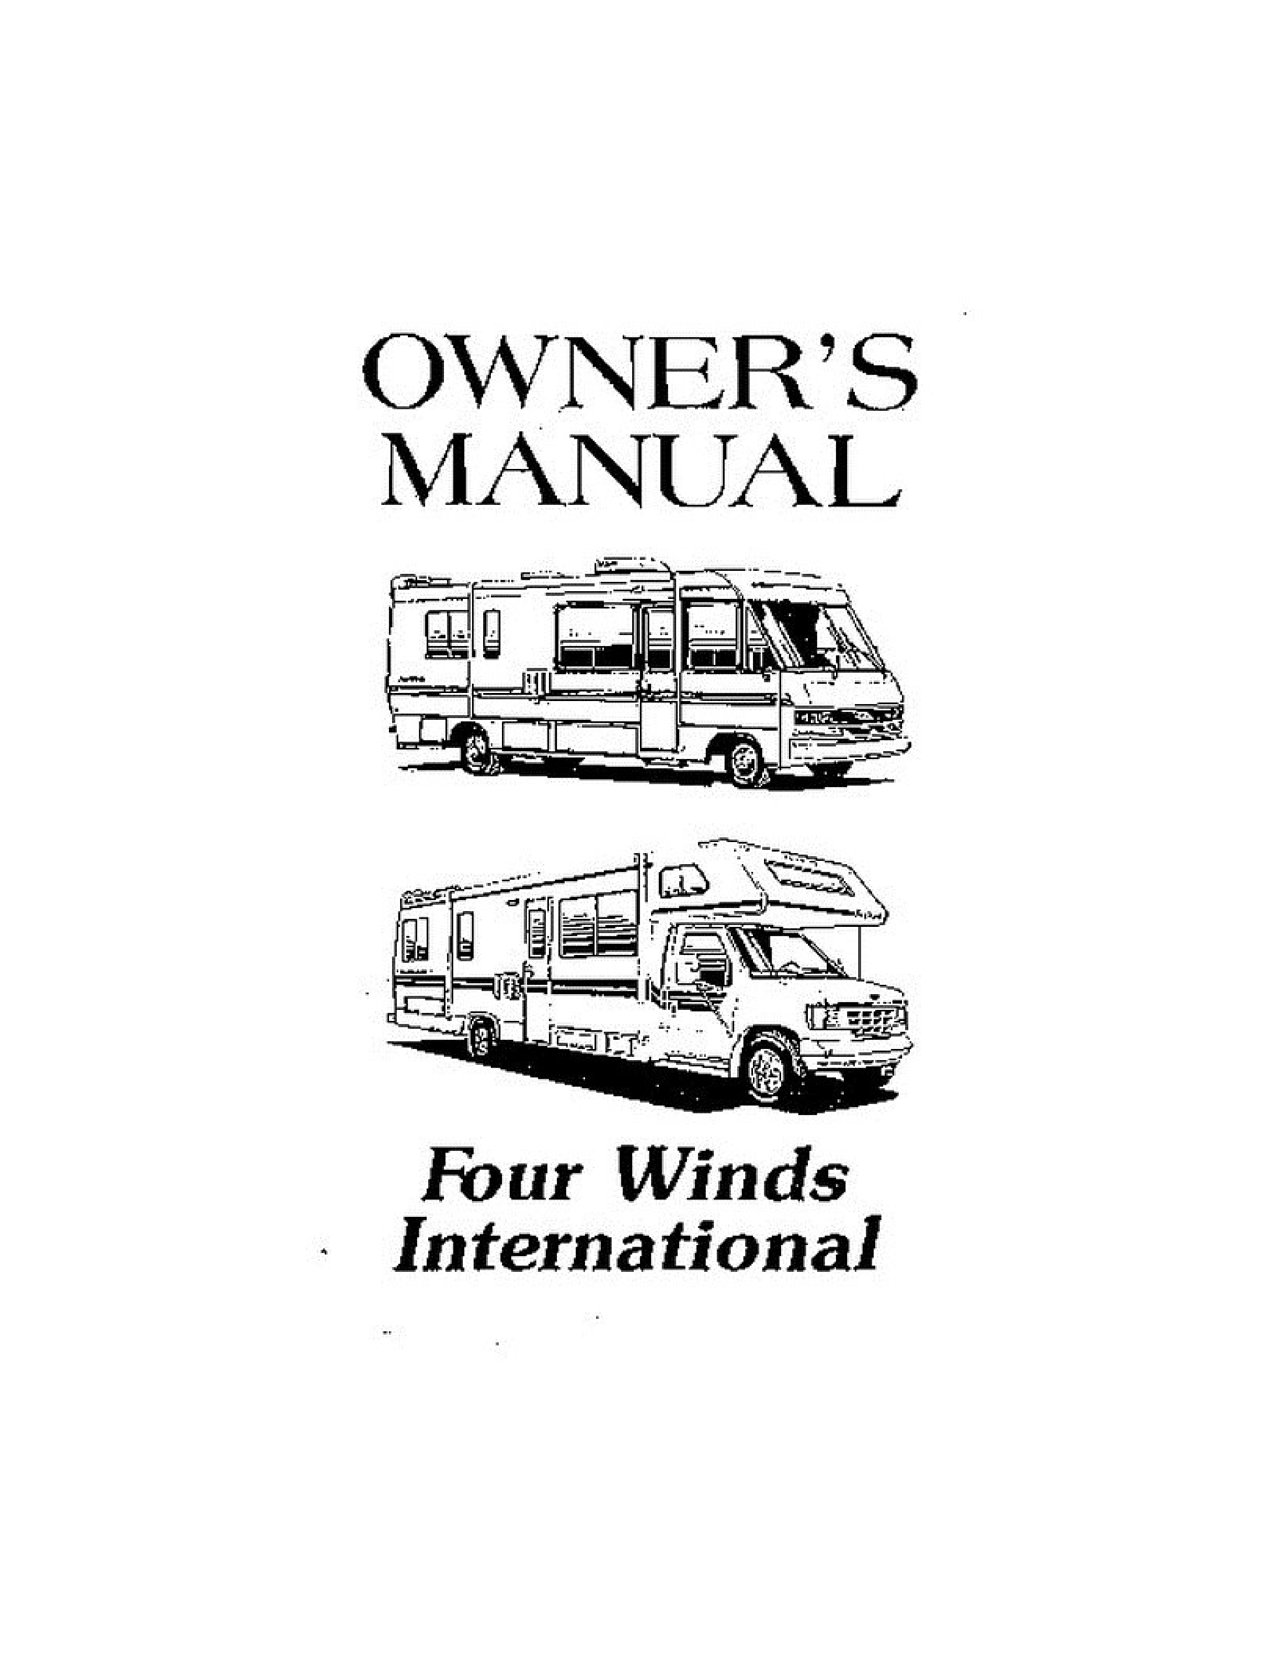 1993 thor four winds rv owner s manual brochure rv brochures download rh recreationalvehicles info four winds motorhome manual Four Winds Motorhome Interiors